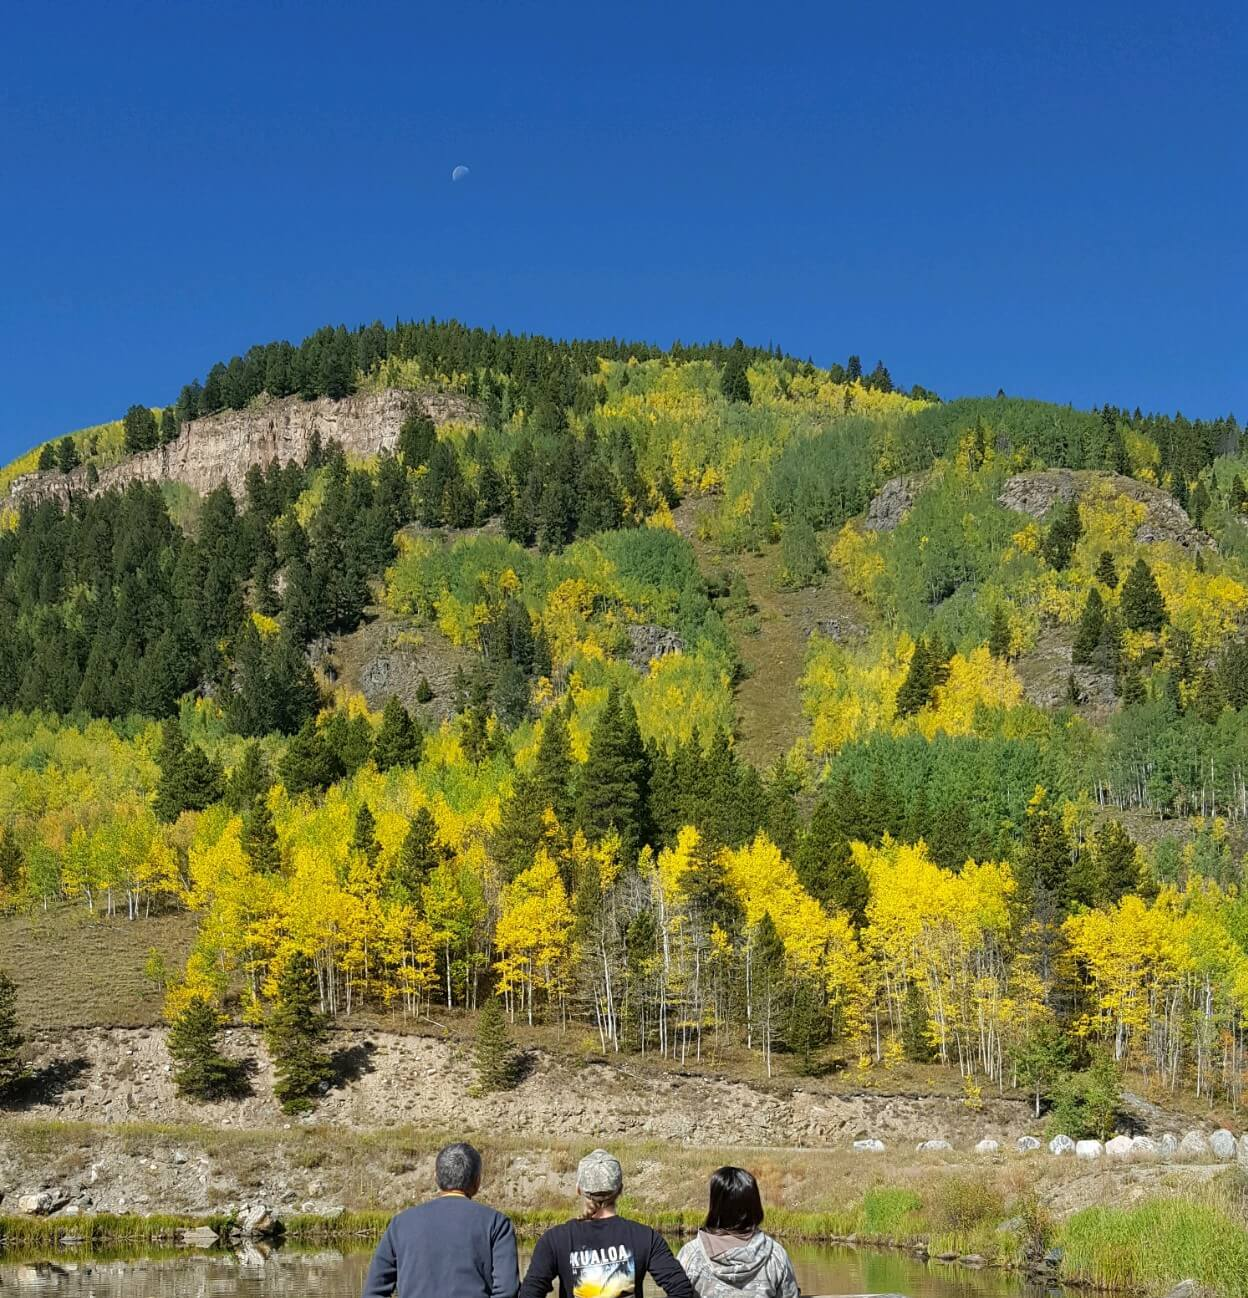 Vibrant blue Colorado sky and Quaking aspens